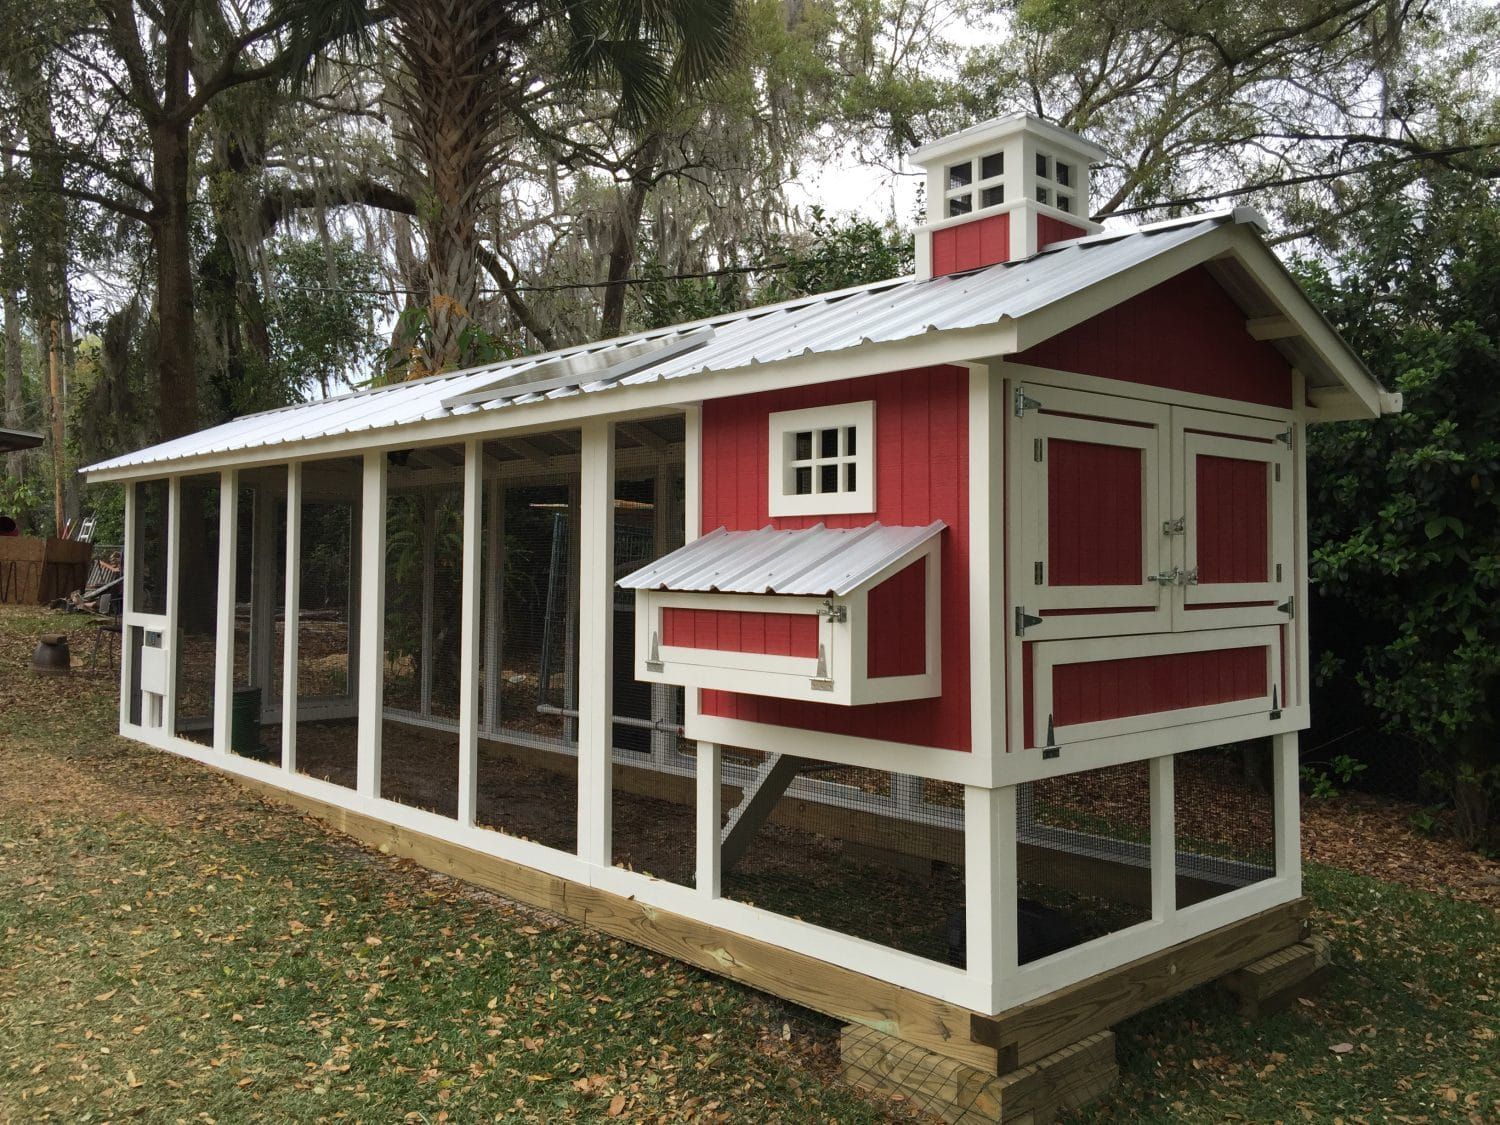 6′ x 24′ wtih cupola, paint job, chicken run door, and solar